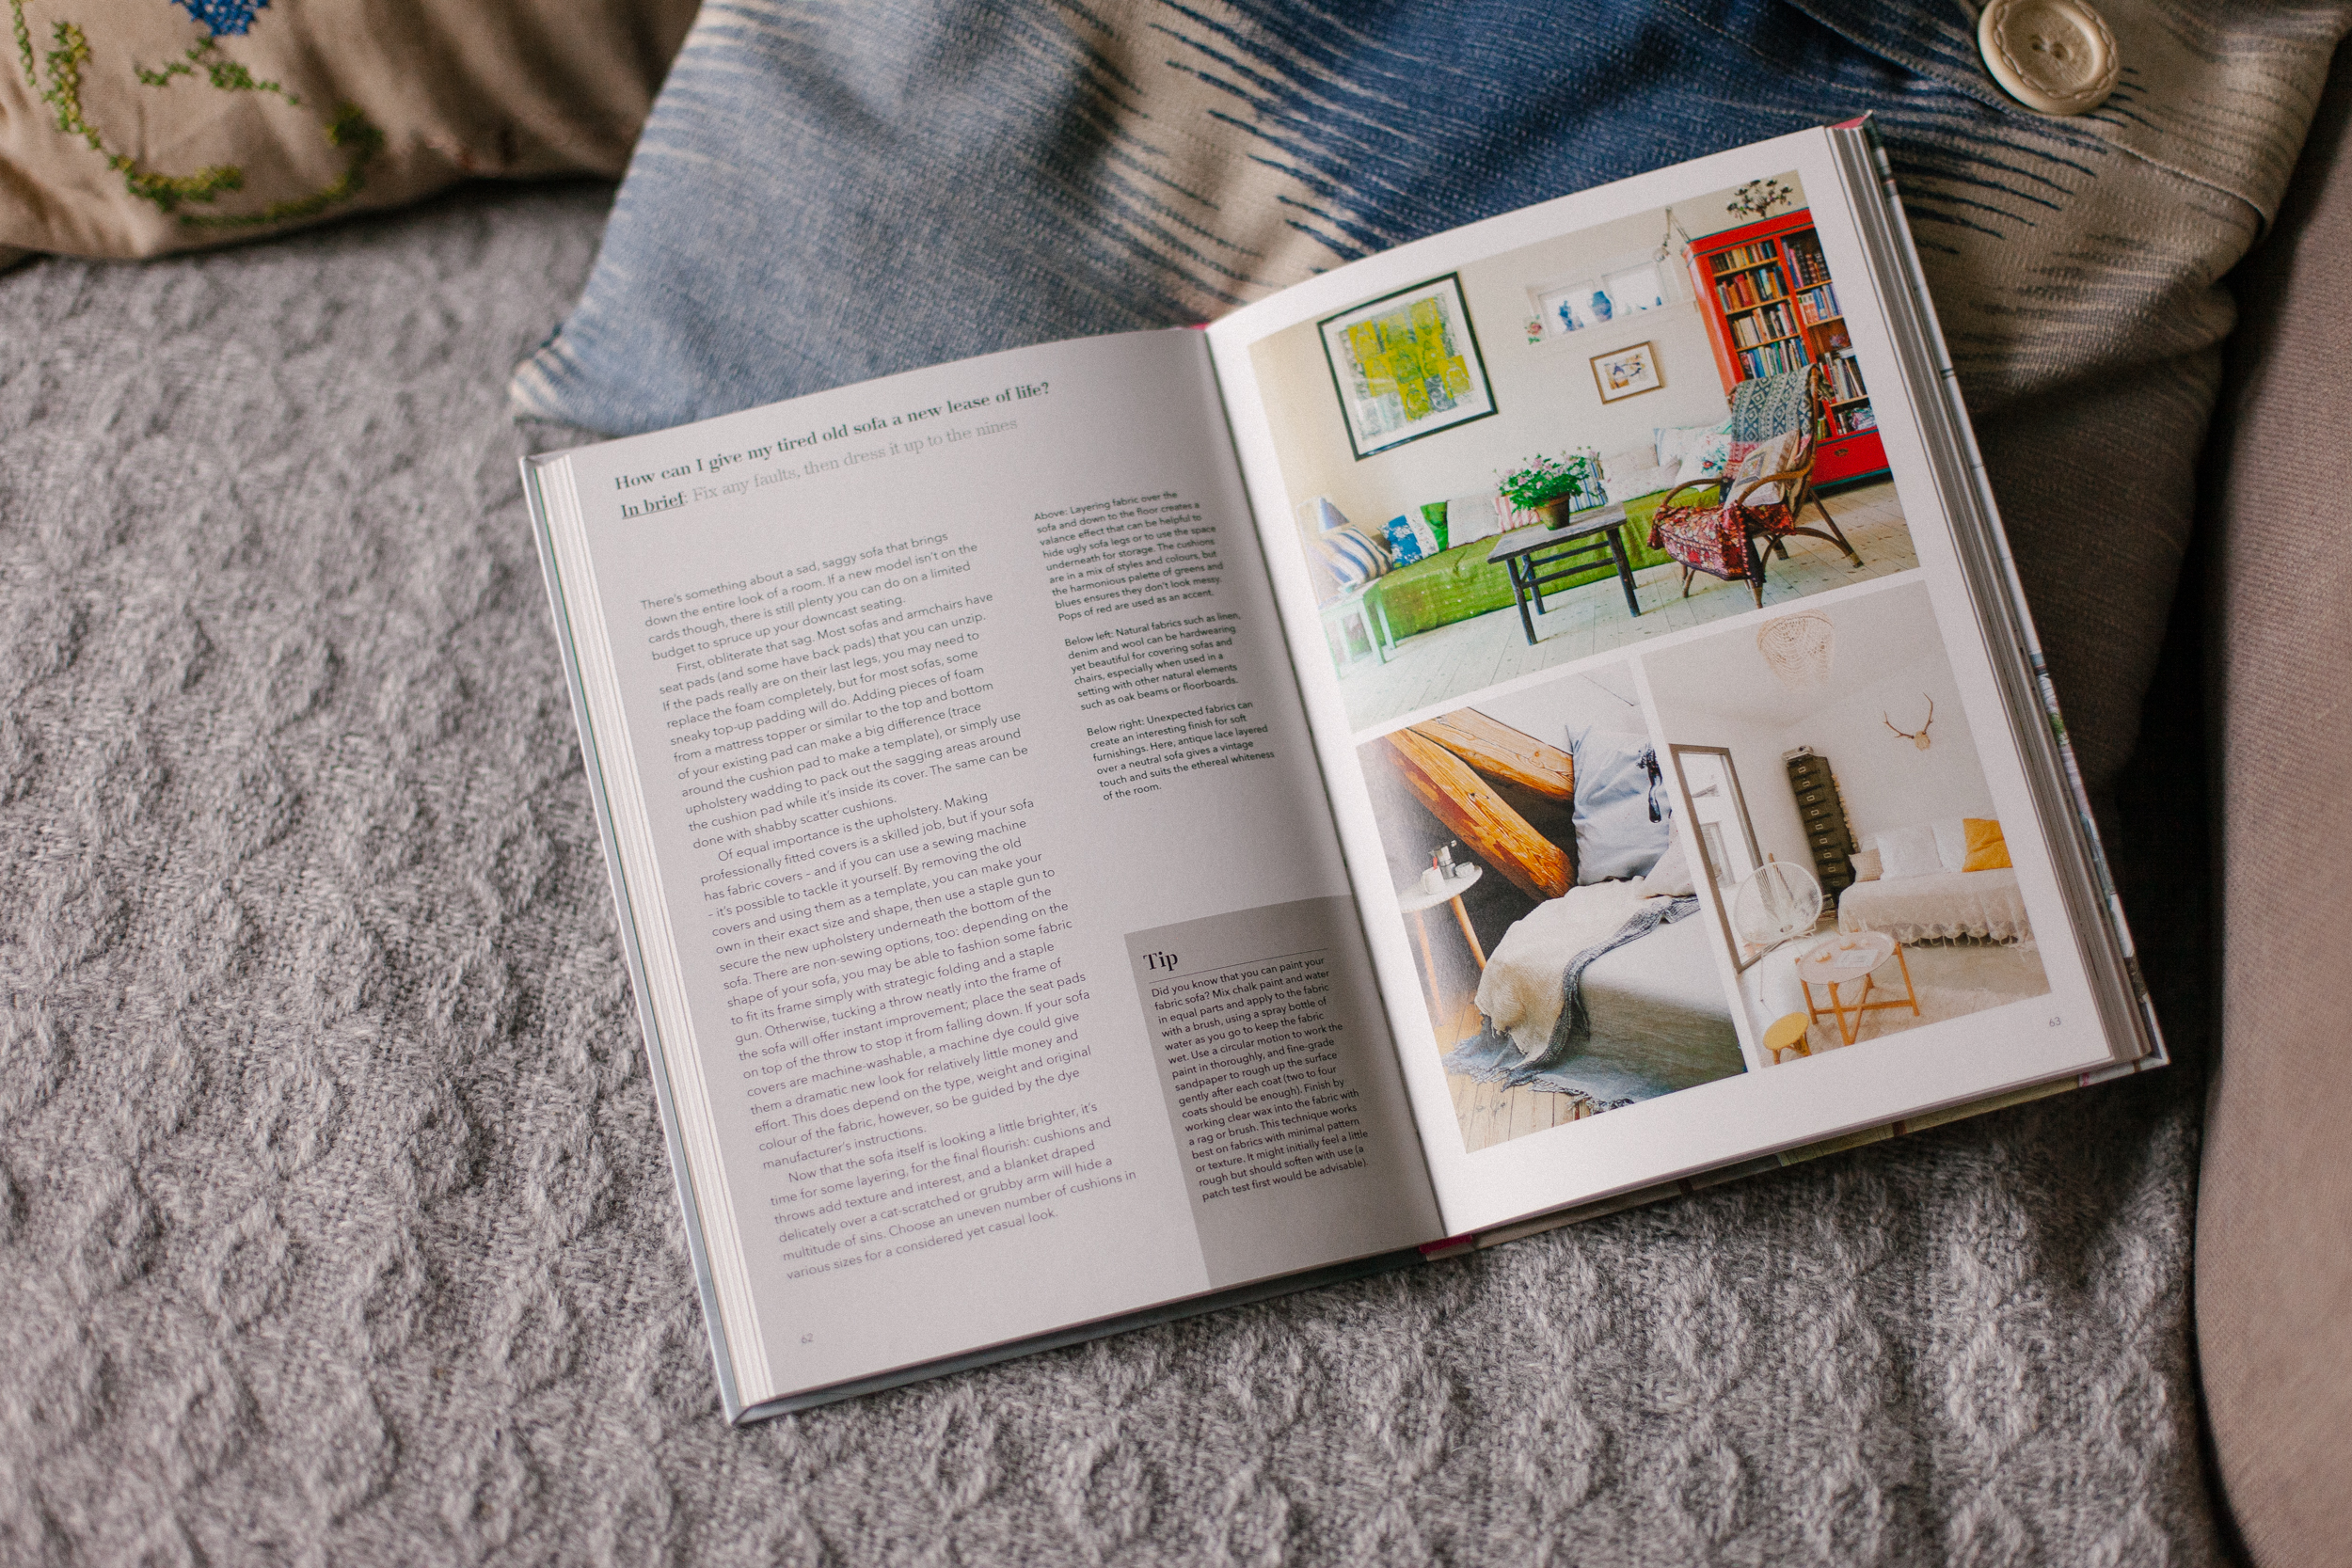 My Bedroom is an Office by Joanna Thornhill p62-63 lifestyle Give Sofa a New Lease of Life v2